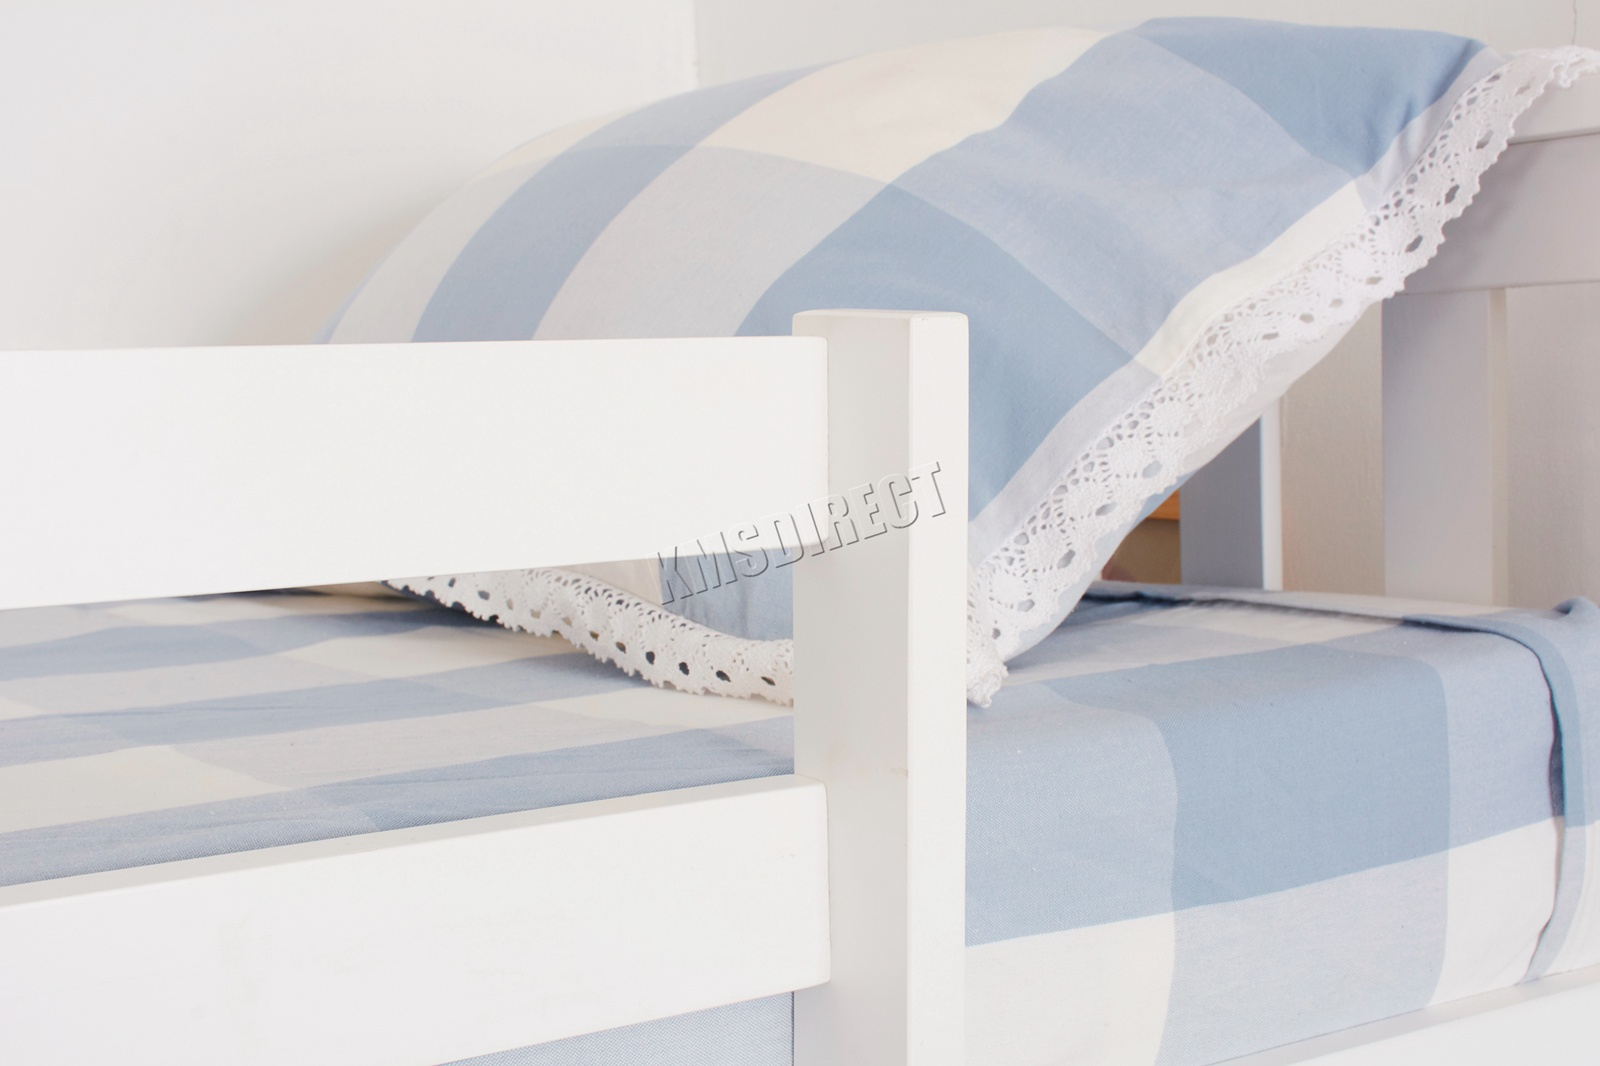 Picture of: Westwood New Detachable Bunk Beds Wood Frame Children S Bed No Mattress 5055418322584 Ebay